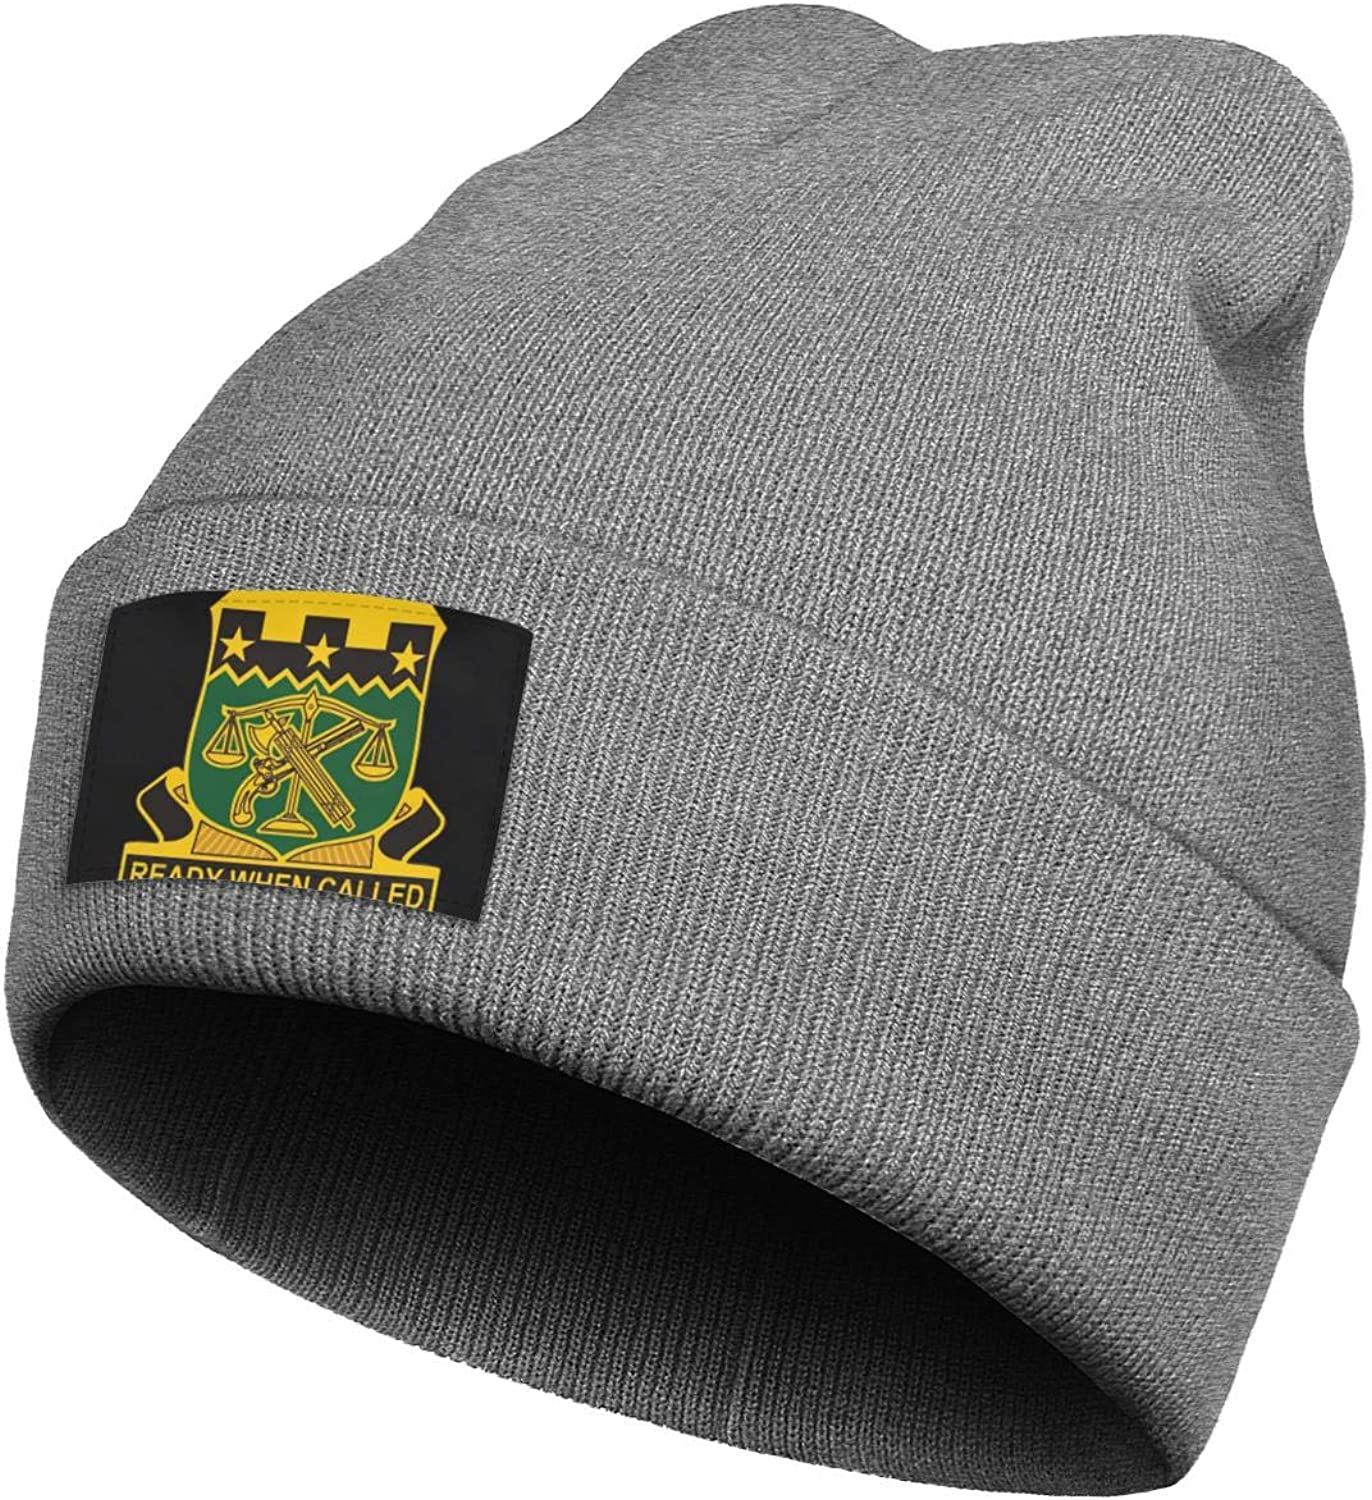 Cdfkjd Beanie Men Women USA 105th Military Police Battalion Hats Perfect for Running